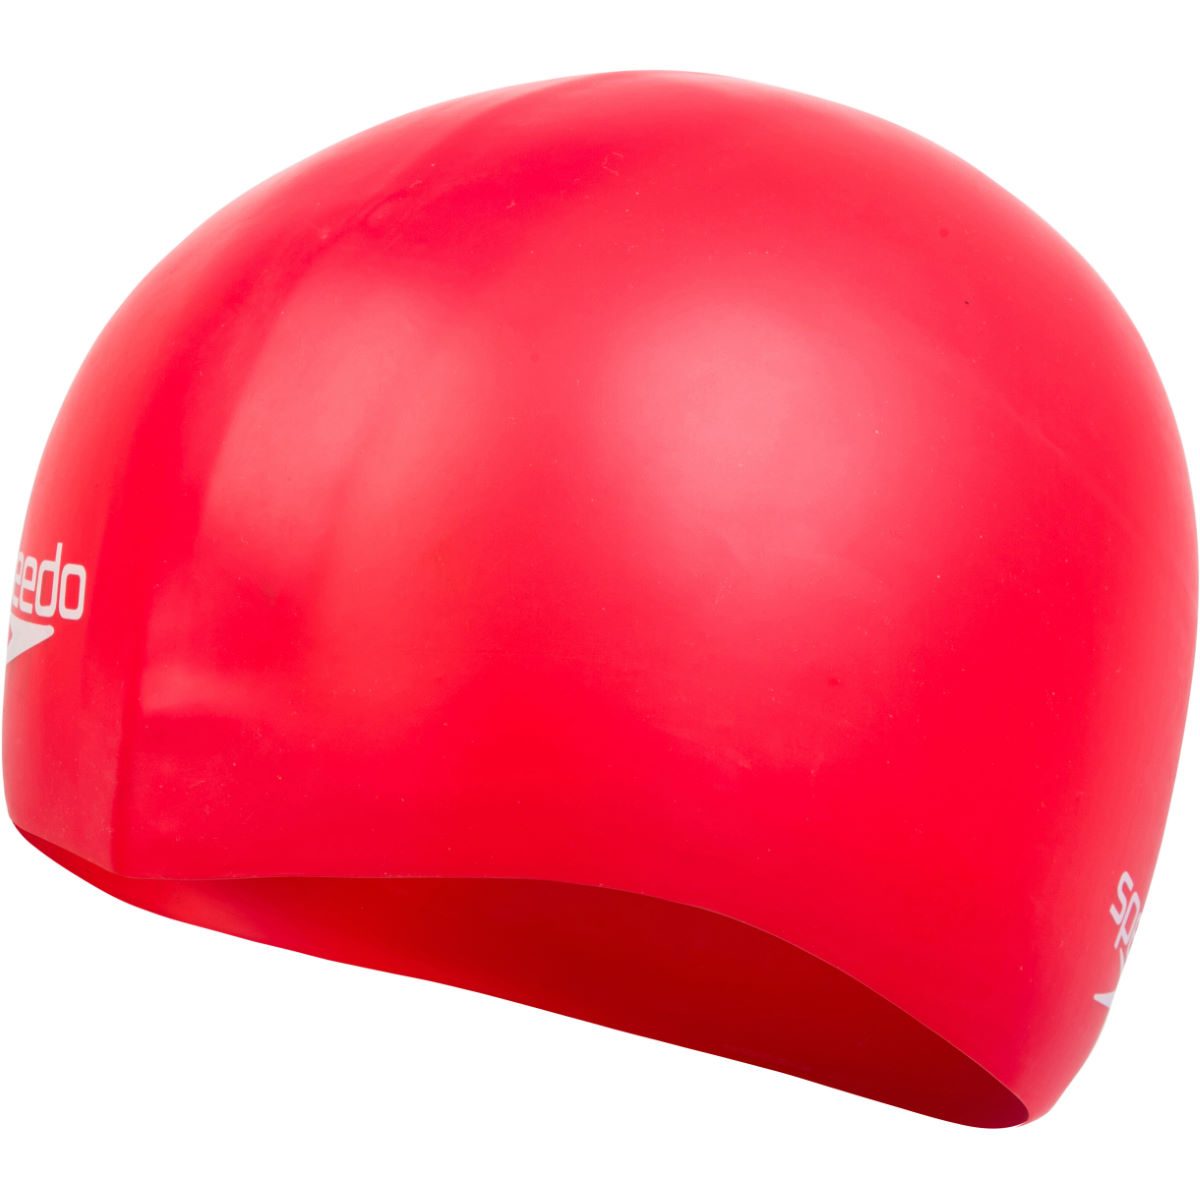 Speedo Plain Moulded Silicone Swimming Cap - One Size Red 3